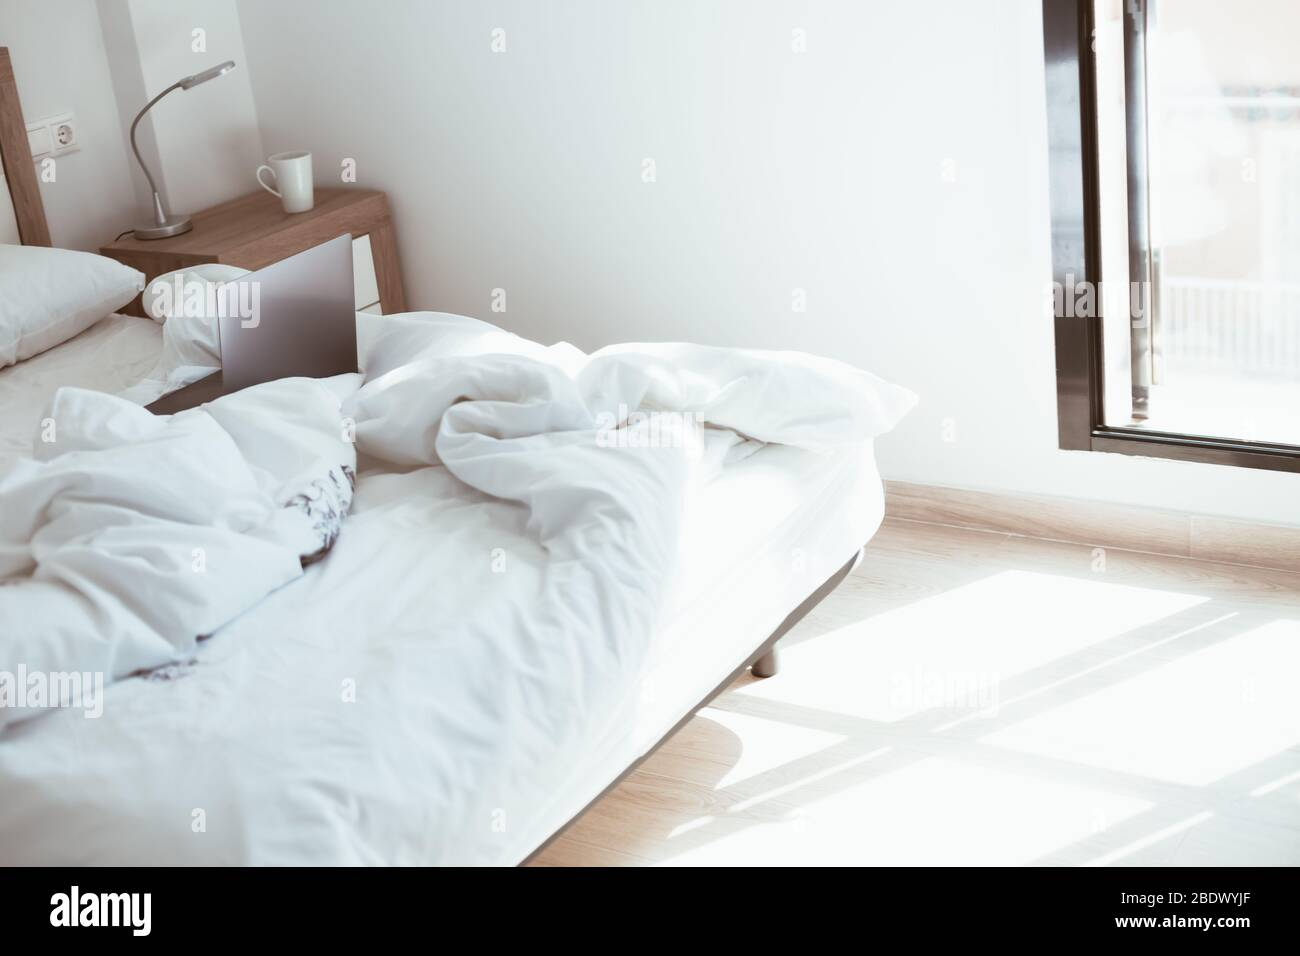 Working Home Quarantine Self Isolation Lockdown Concept Laptop In Unmade Bed Comfortable And Cozy Remote Home Office Modern Apartments With Sunligh Stock Photo Alamy